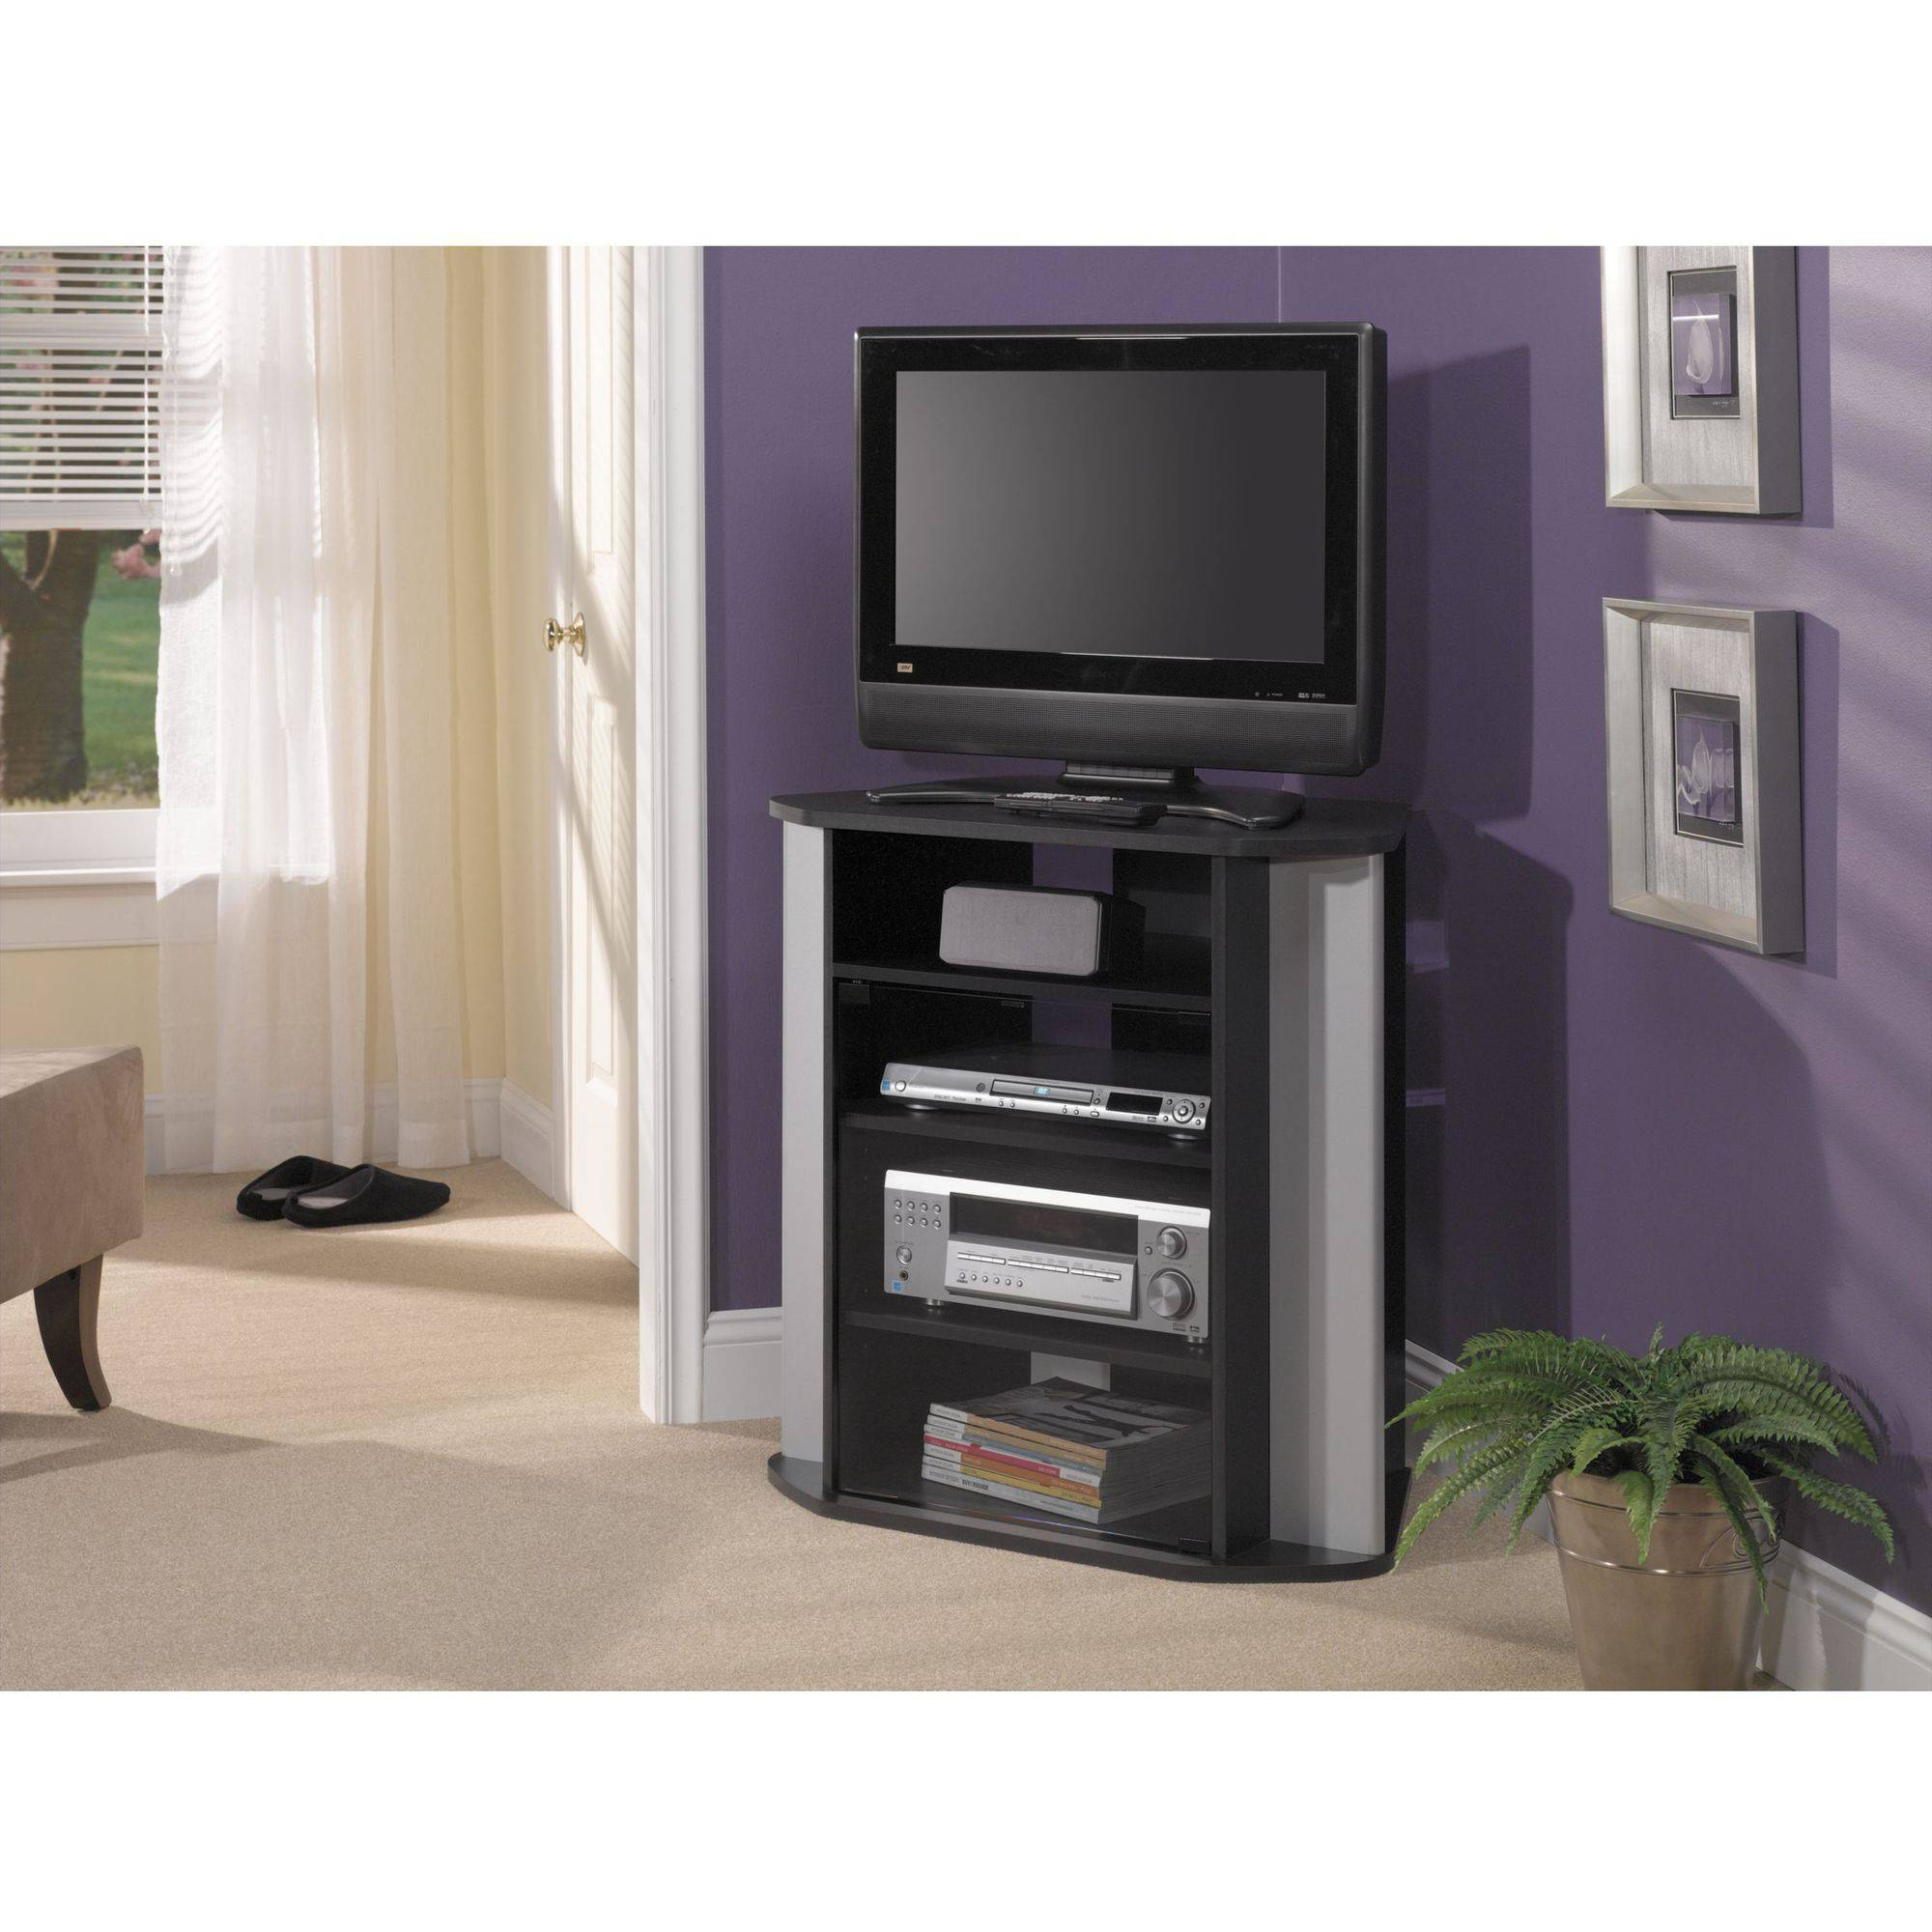 Bush Visions Black Tall Corner TV Stand  for TVs up to 37    Walmart com. Bush Visions Black Tall Corner TV Stand  for TVs up to 37